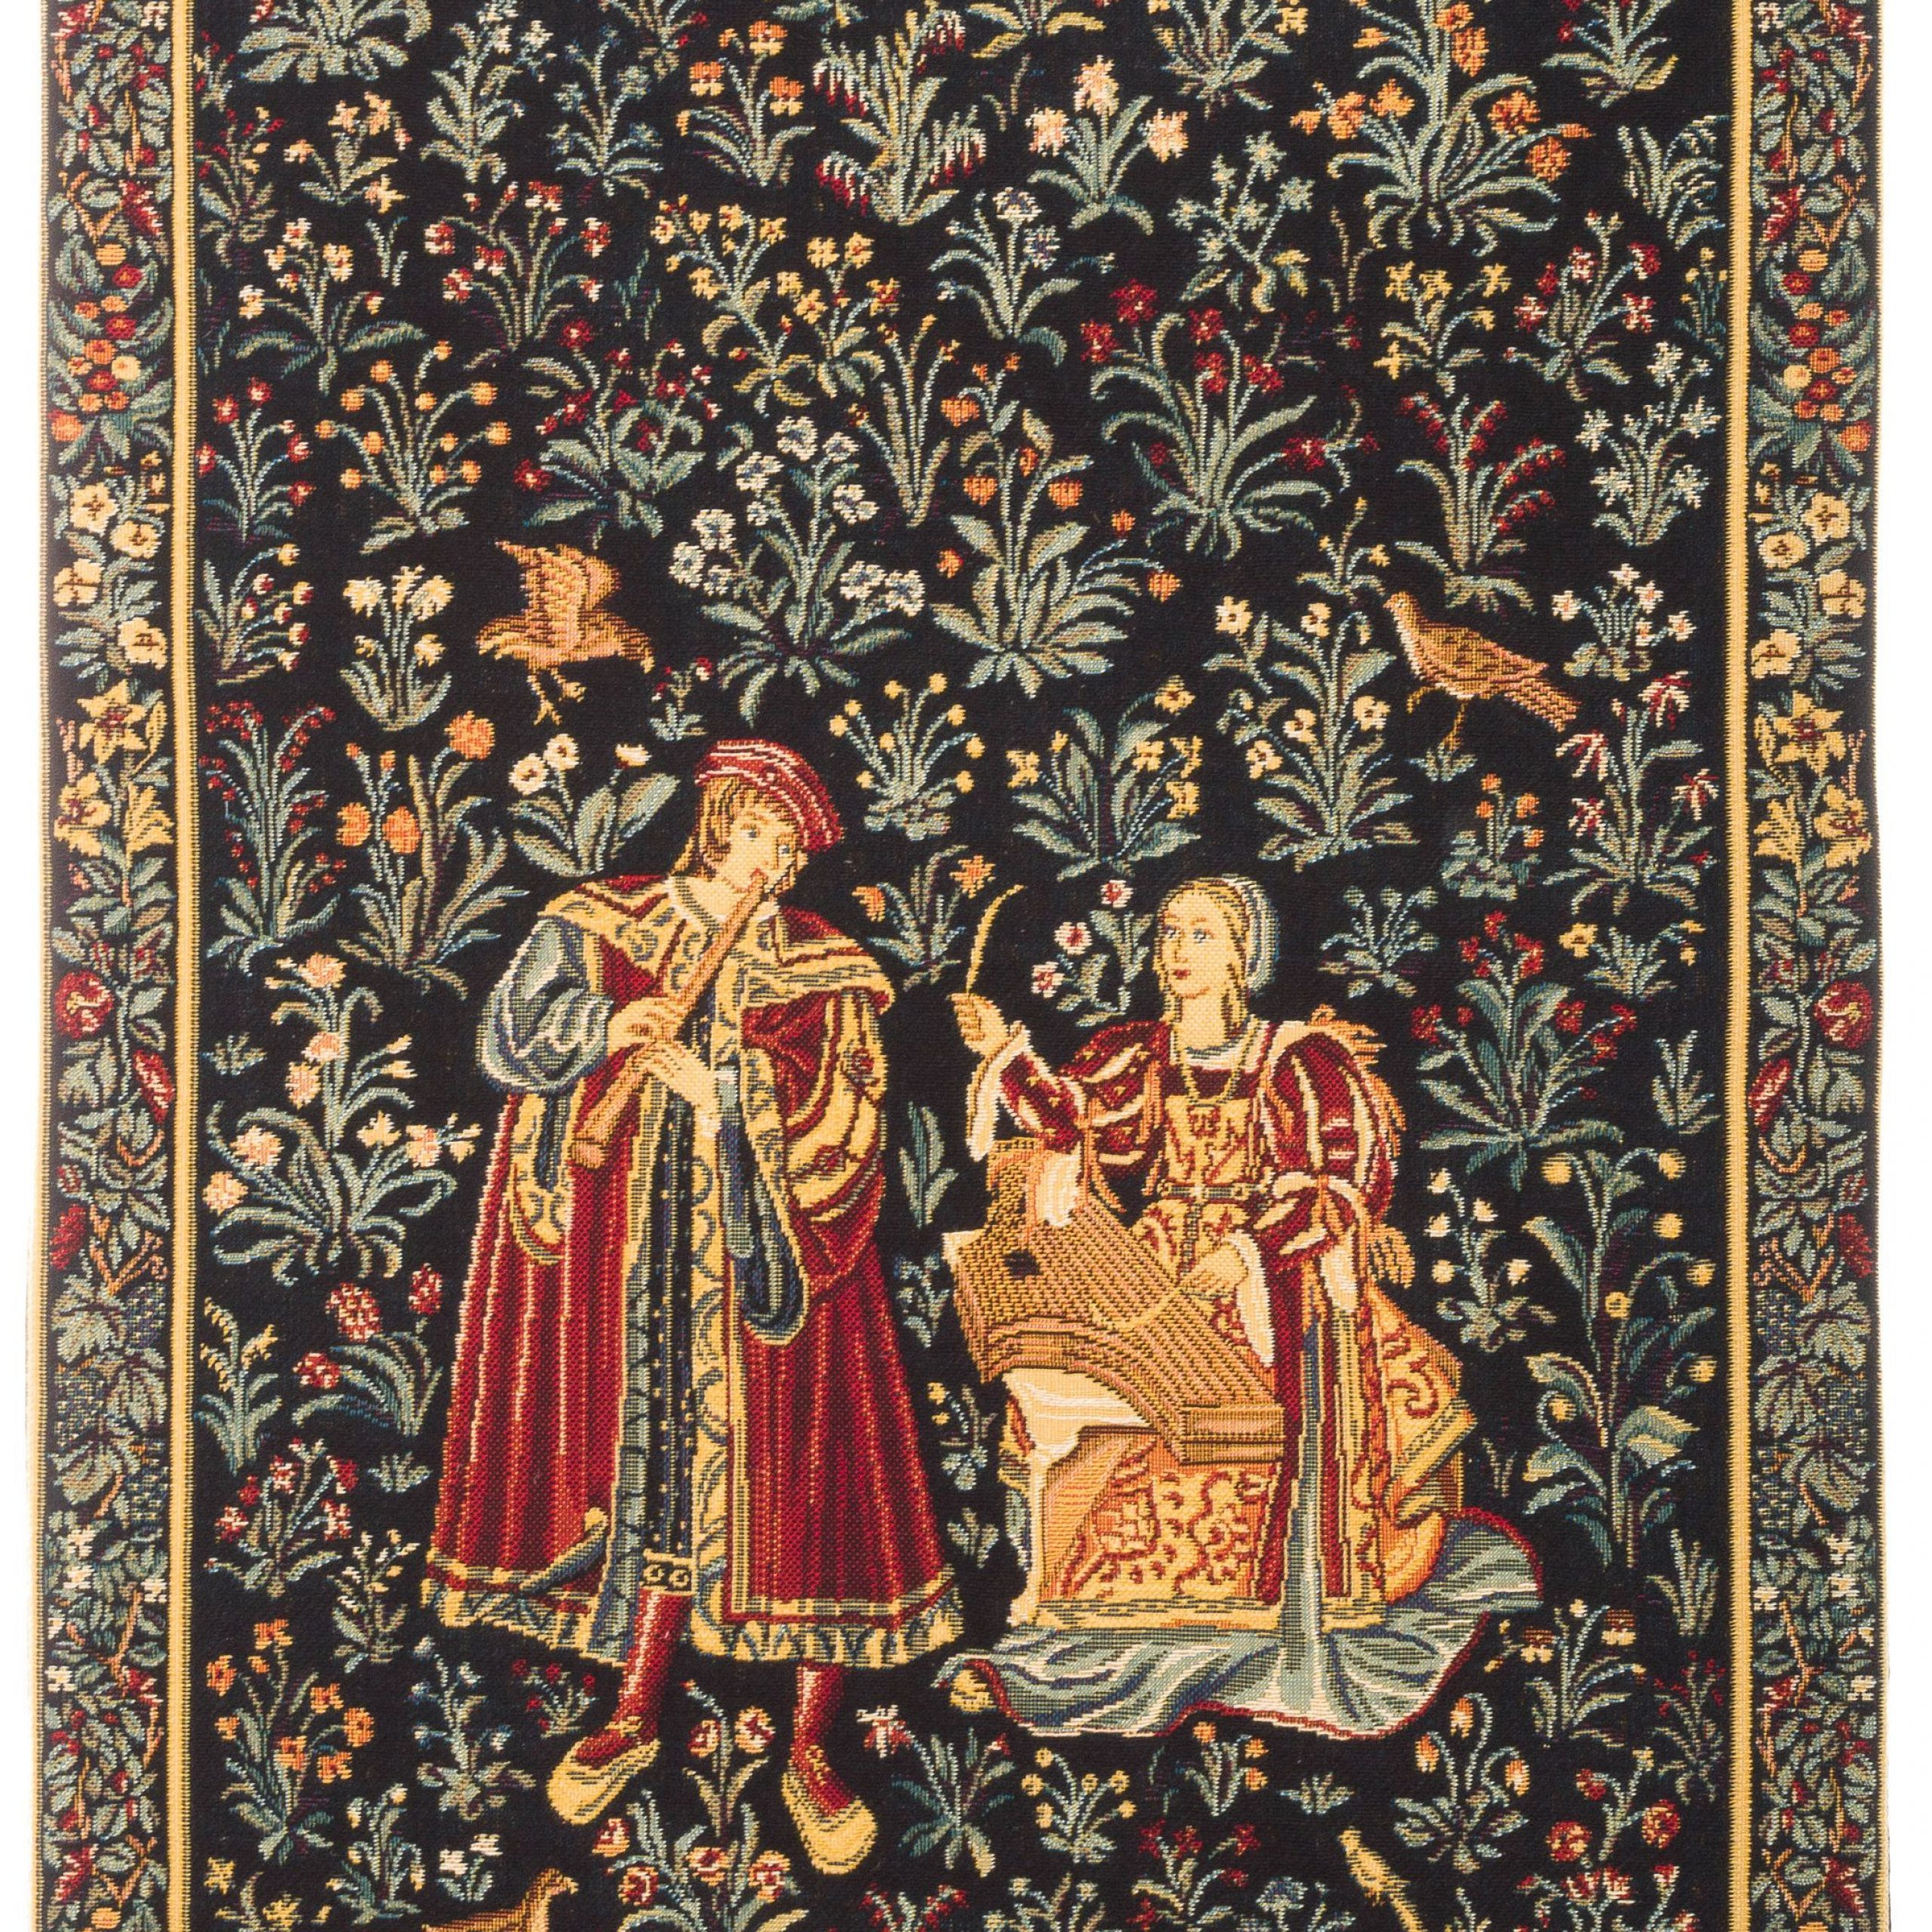 Medieval Tapestry Wall Hanging Concert Scene Millefleurs For 2017 Blended Fabric Mucha Autumn European Wall Hangings (View 7 of 20)